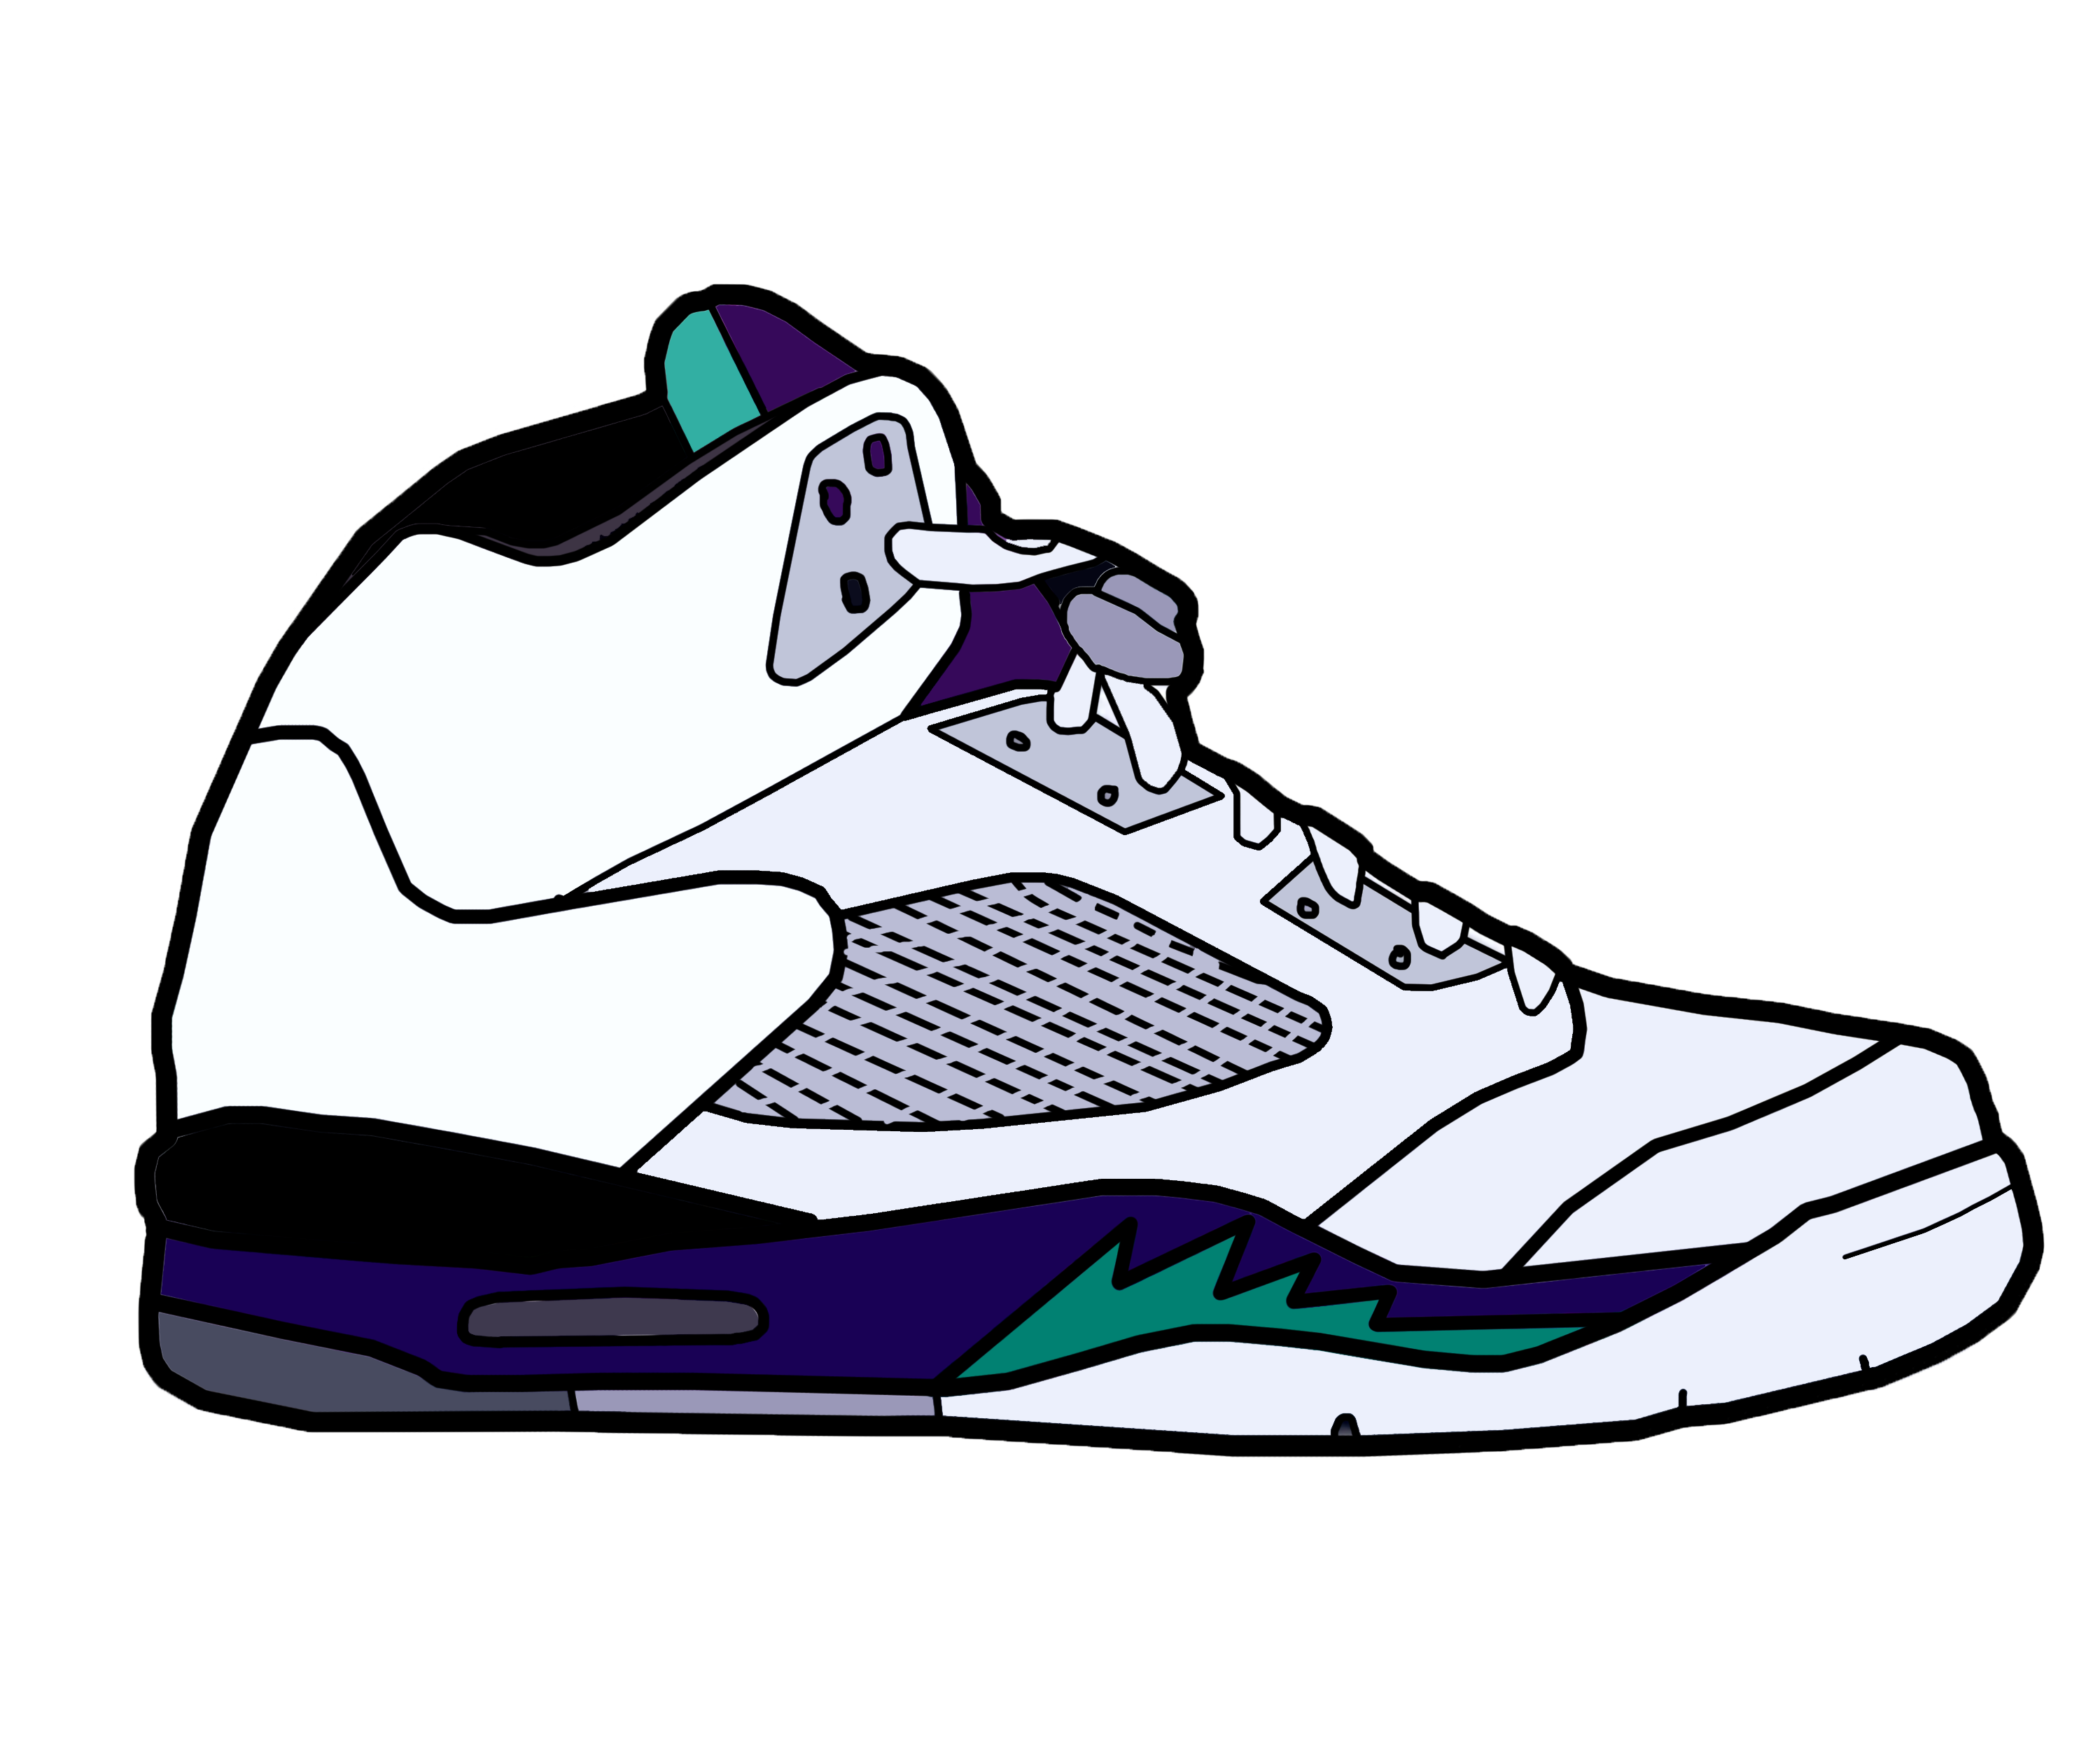 clip art library library Drawing sneakers basketball shoe. Jordan vectors provincial archives